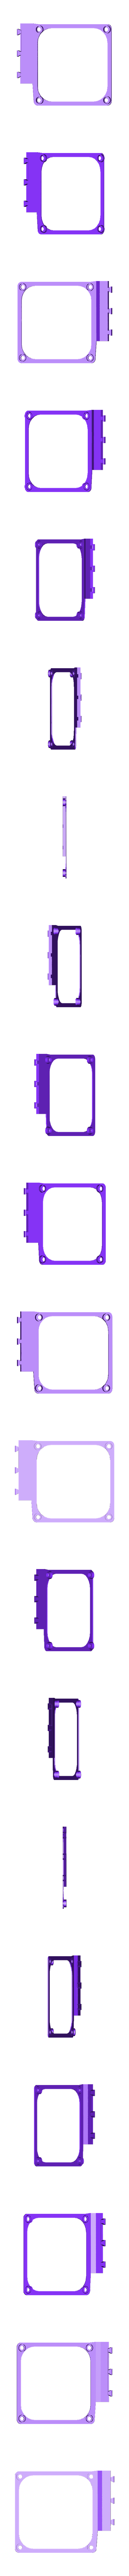 fan-right-92mm.stl Download free STL file Anycubic Mega Liftup Frame (big fans, front SD, drawers) • 3D print template, sui77